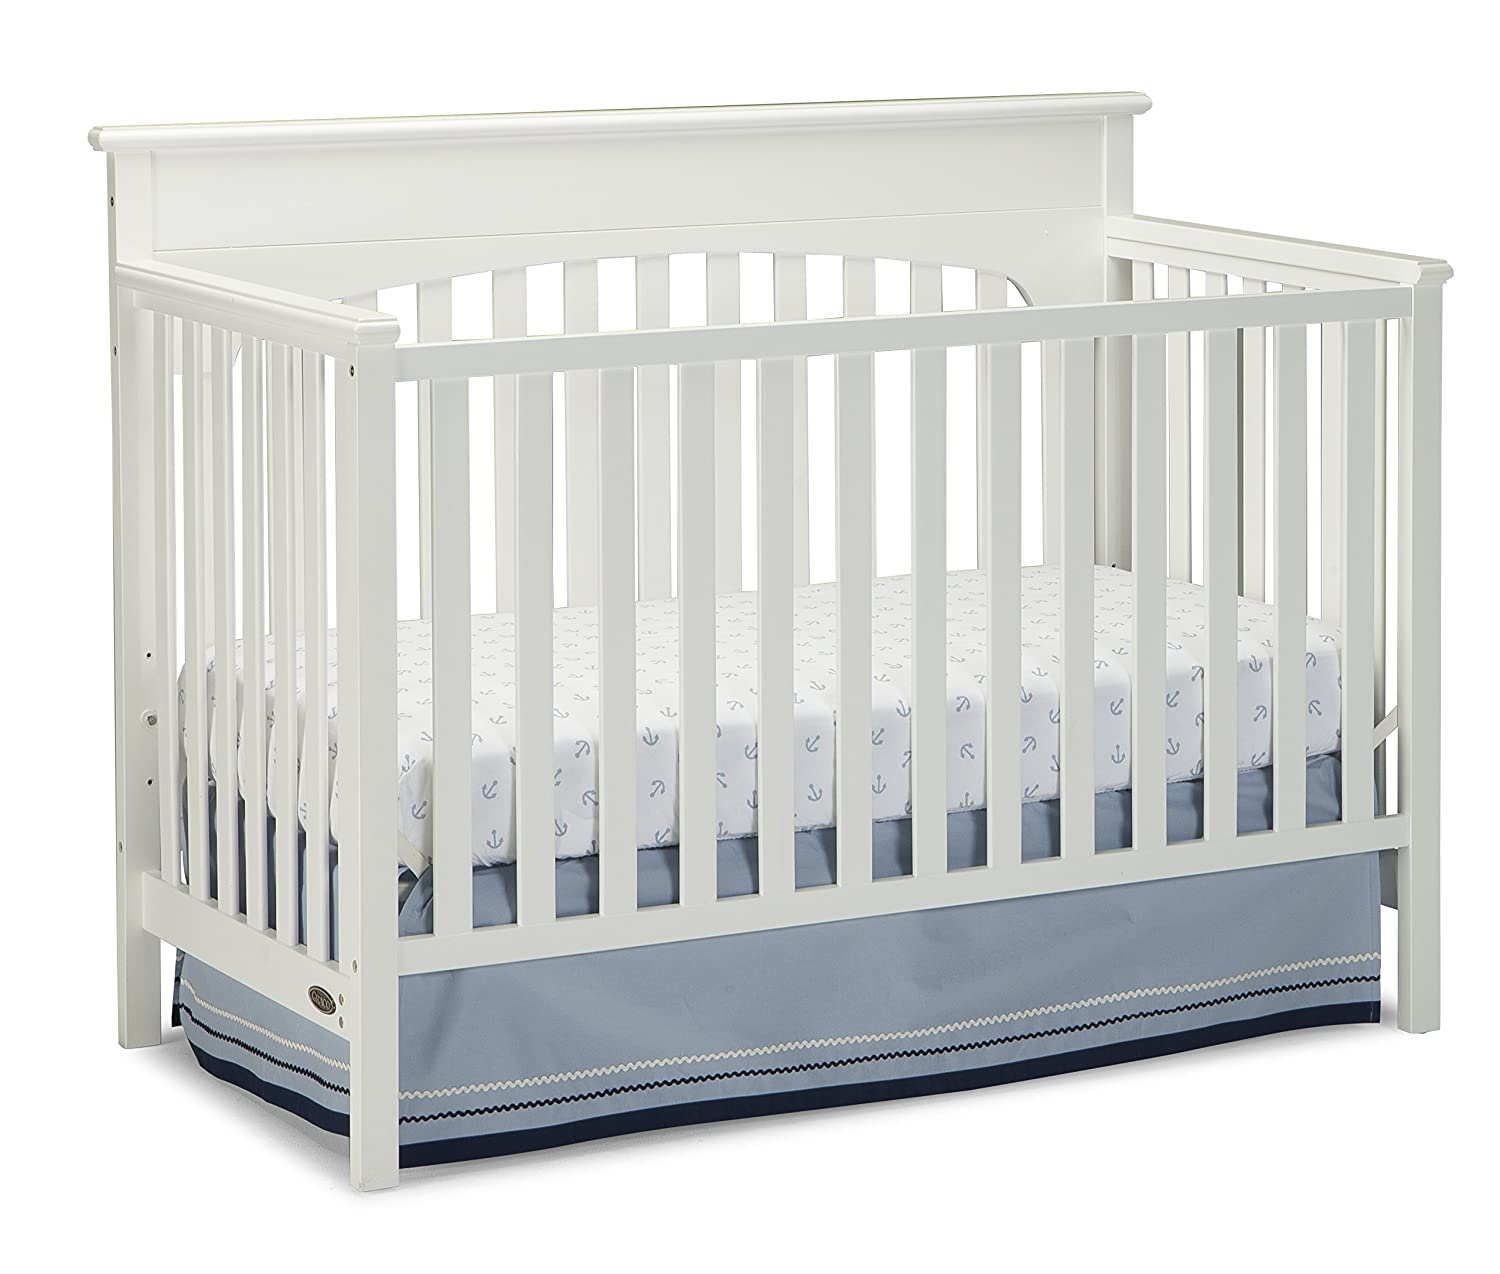 Crib price range - Graco Lauren Convertible Crib White